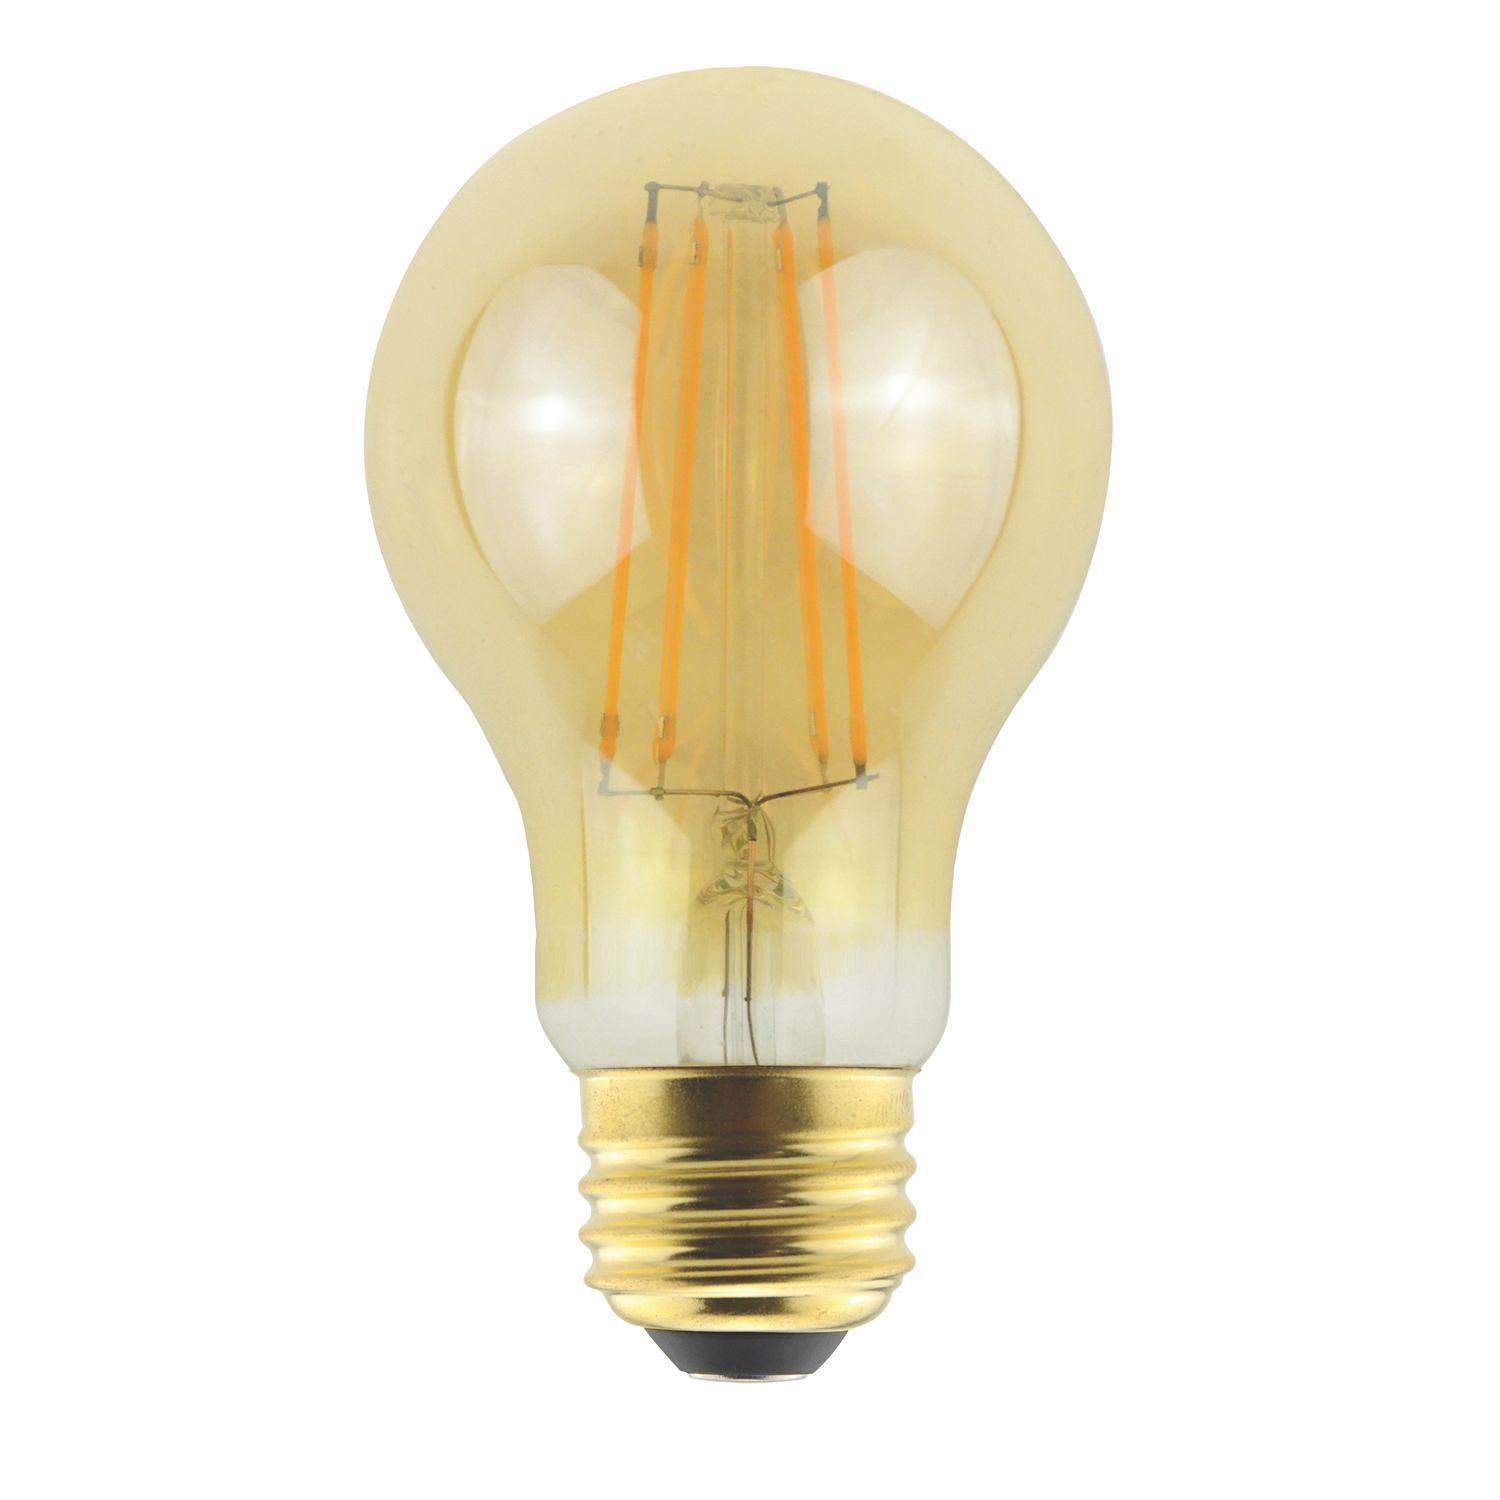 A19AMB5ANT/820/LED2 85038 A19 120V 5W 2000K E26 AMBER ProLED